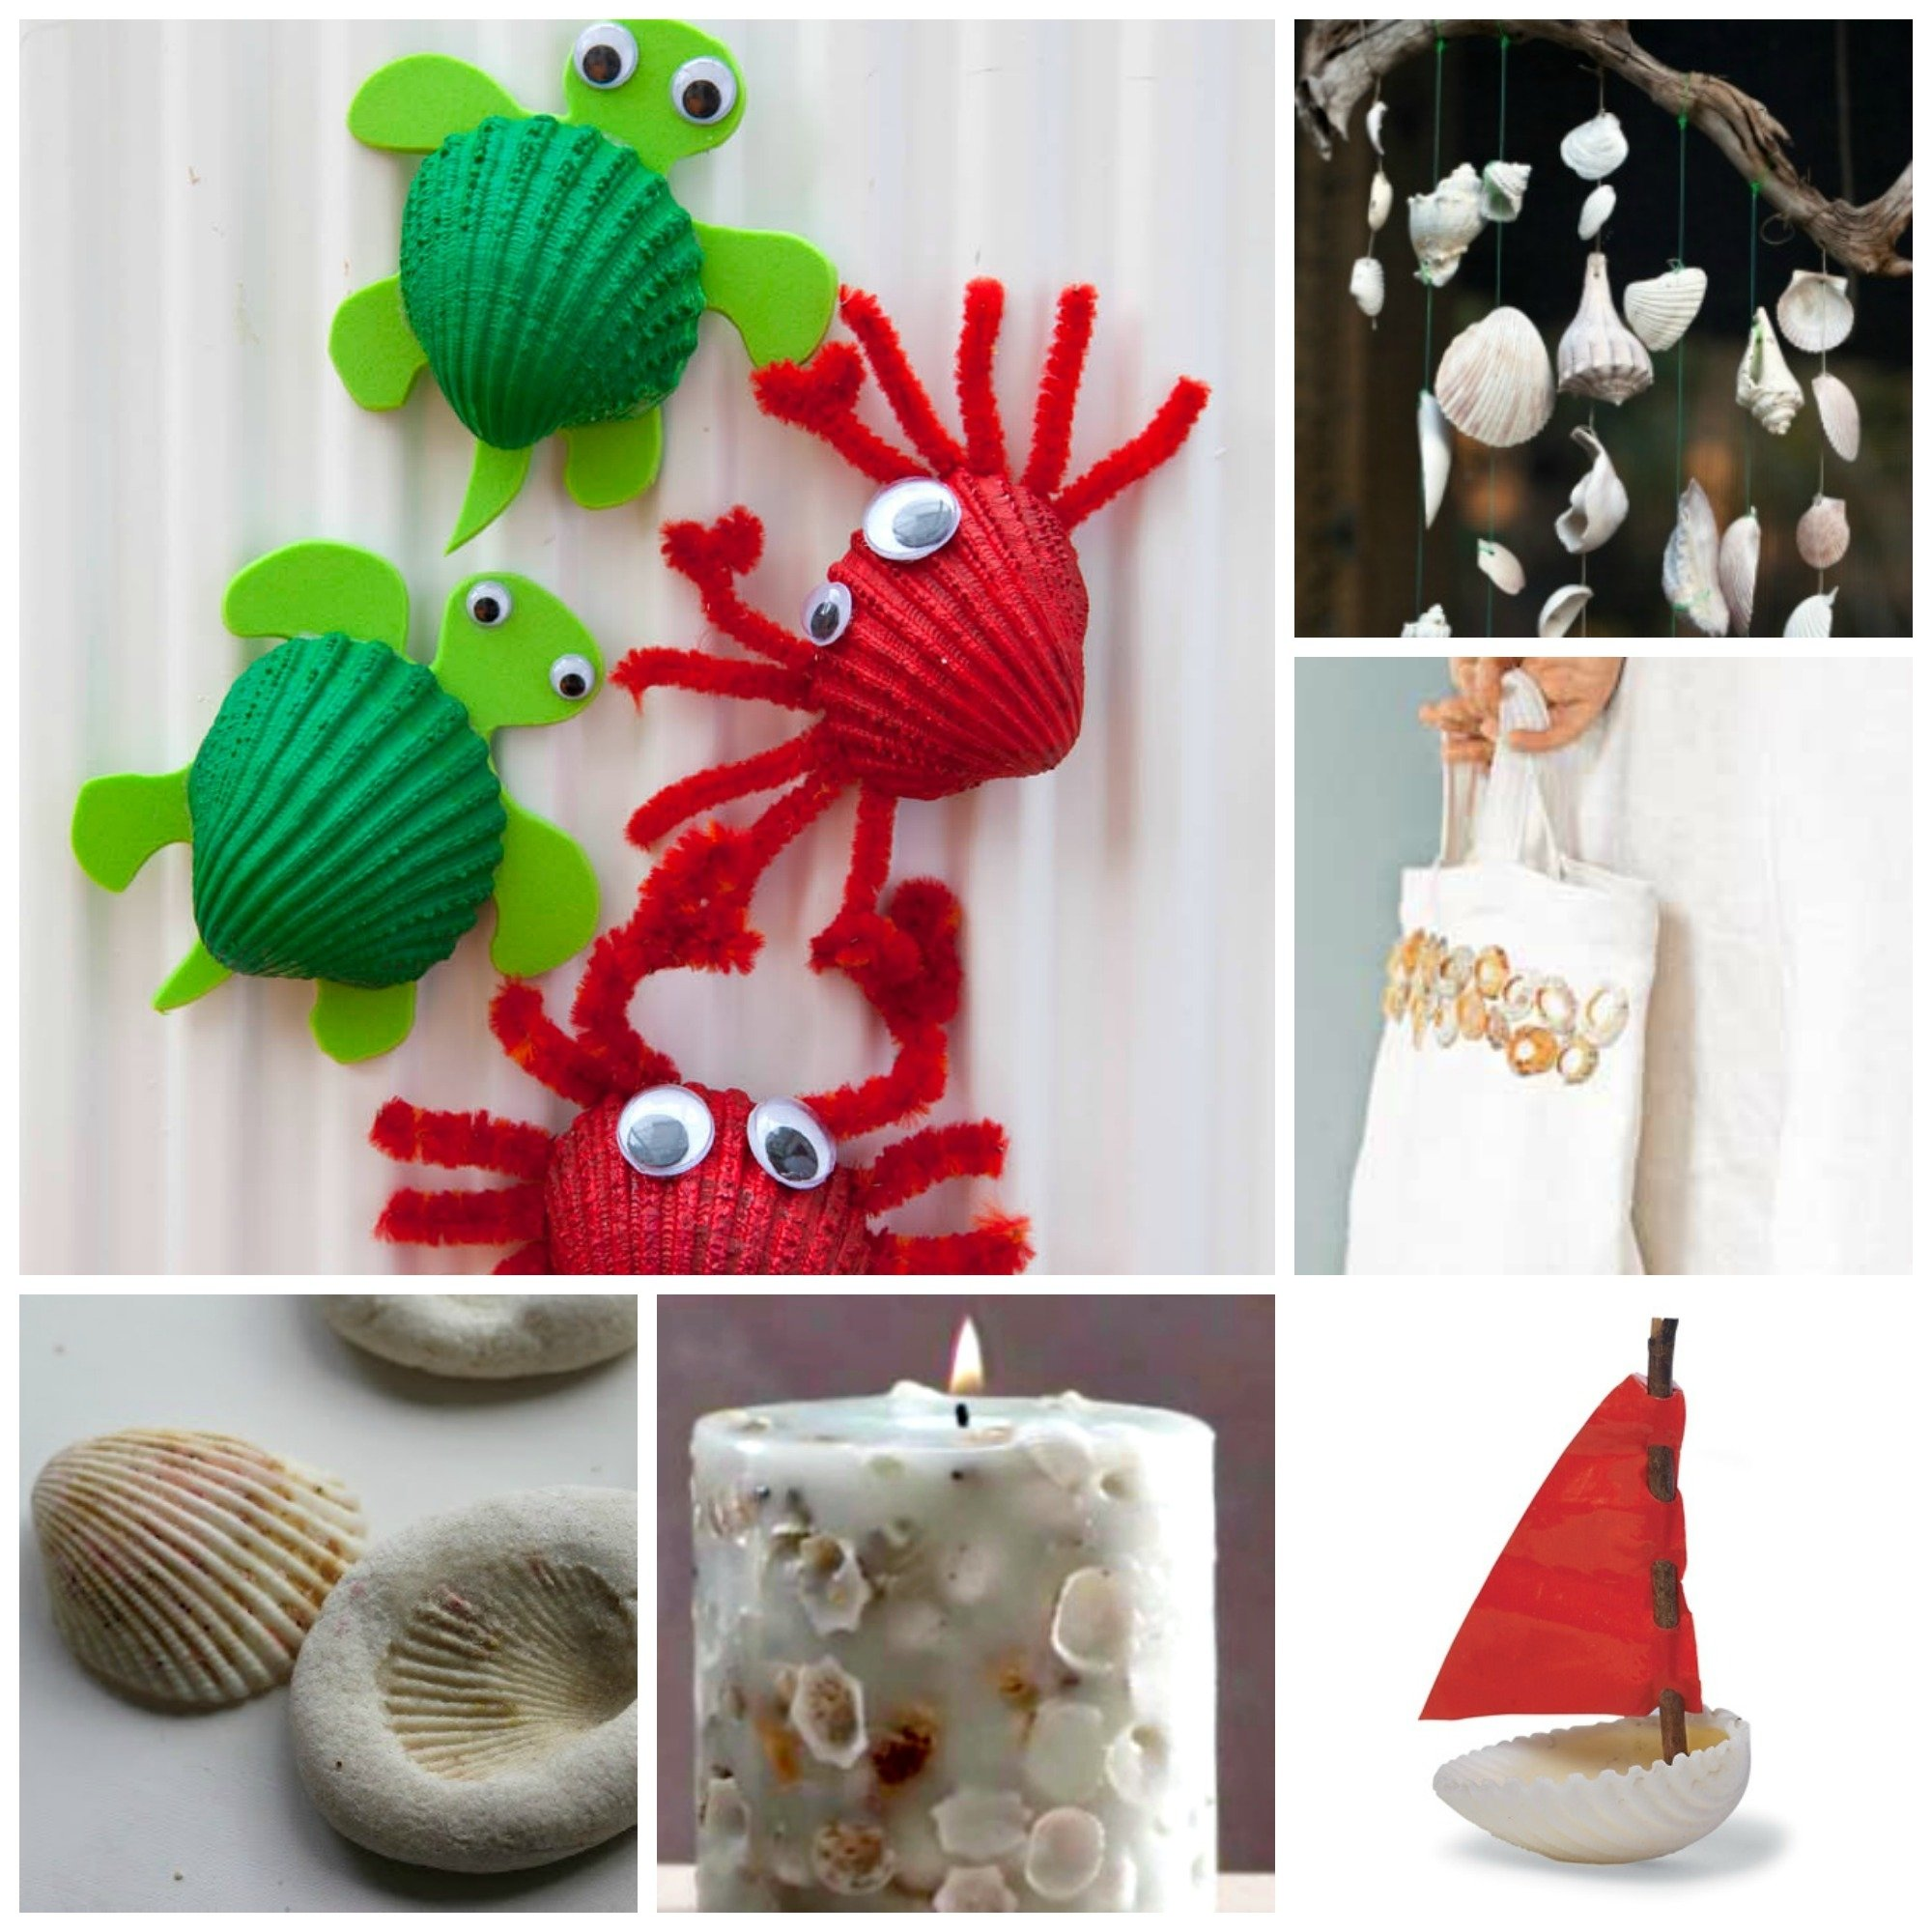 10 Best Easy Craft Ideas For Adults 37 sea shell craft ideas red ted arts blog 2020